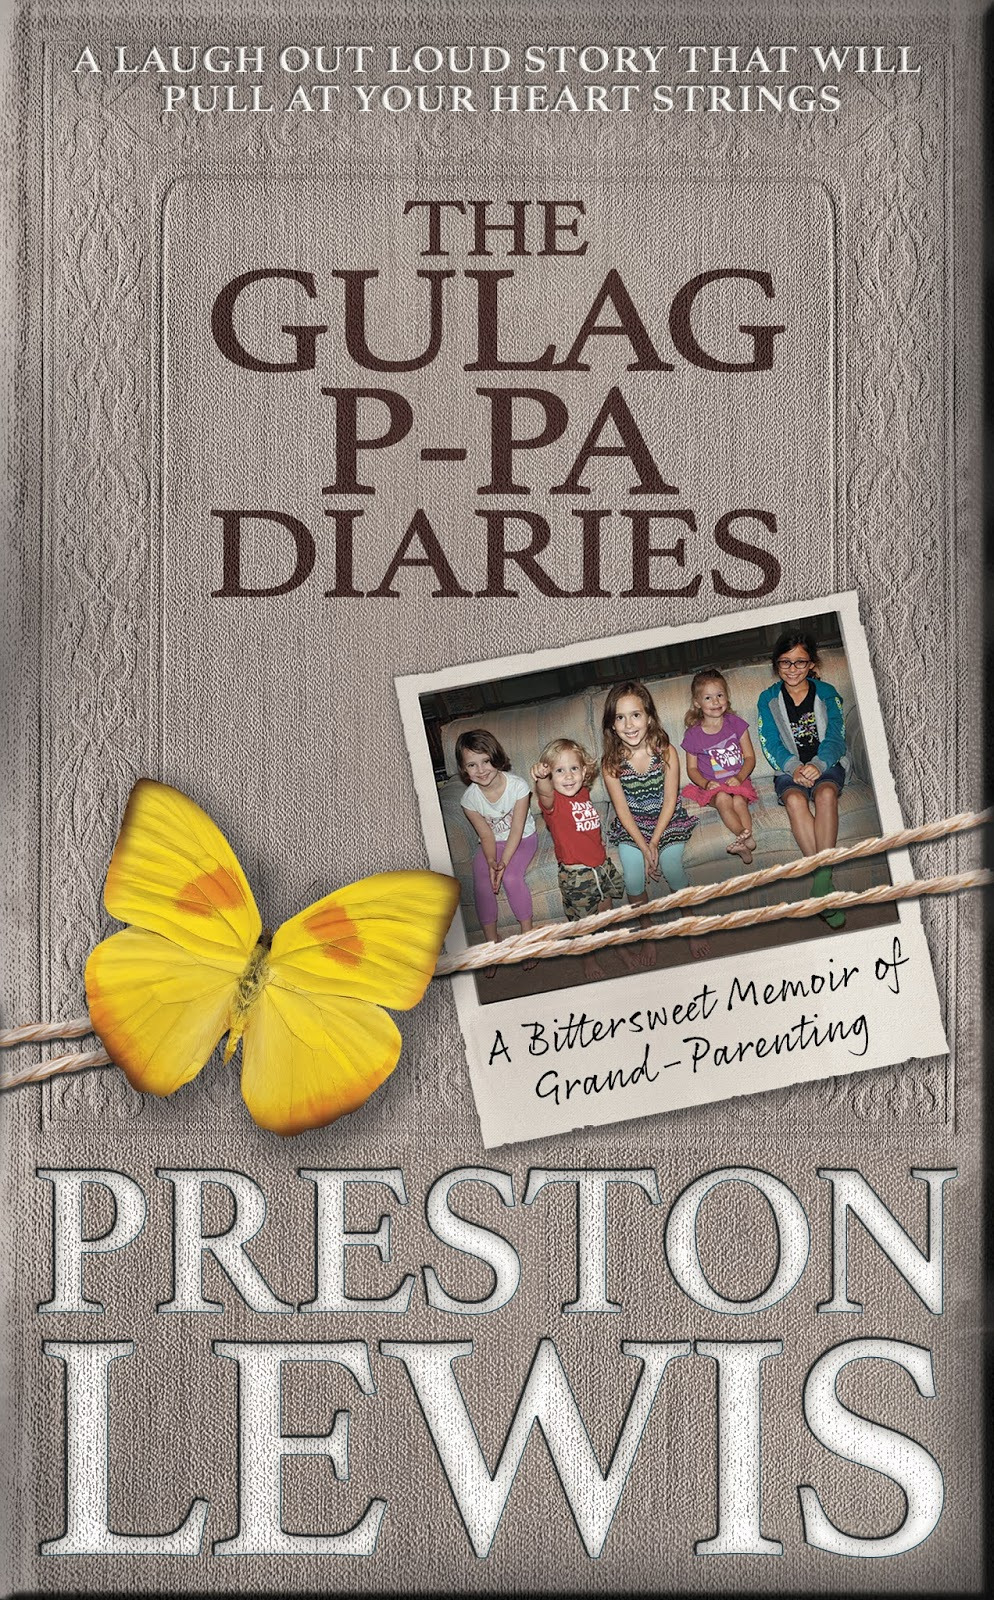 The Gulag P-Pa Diaries book cover